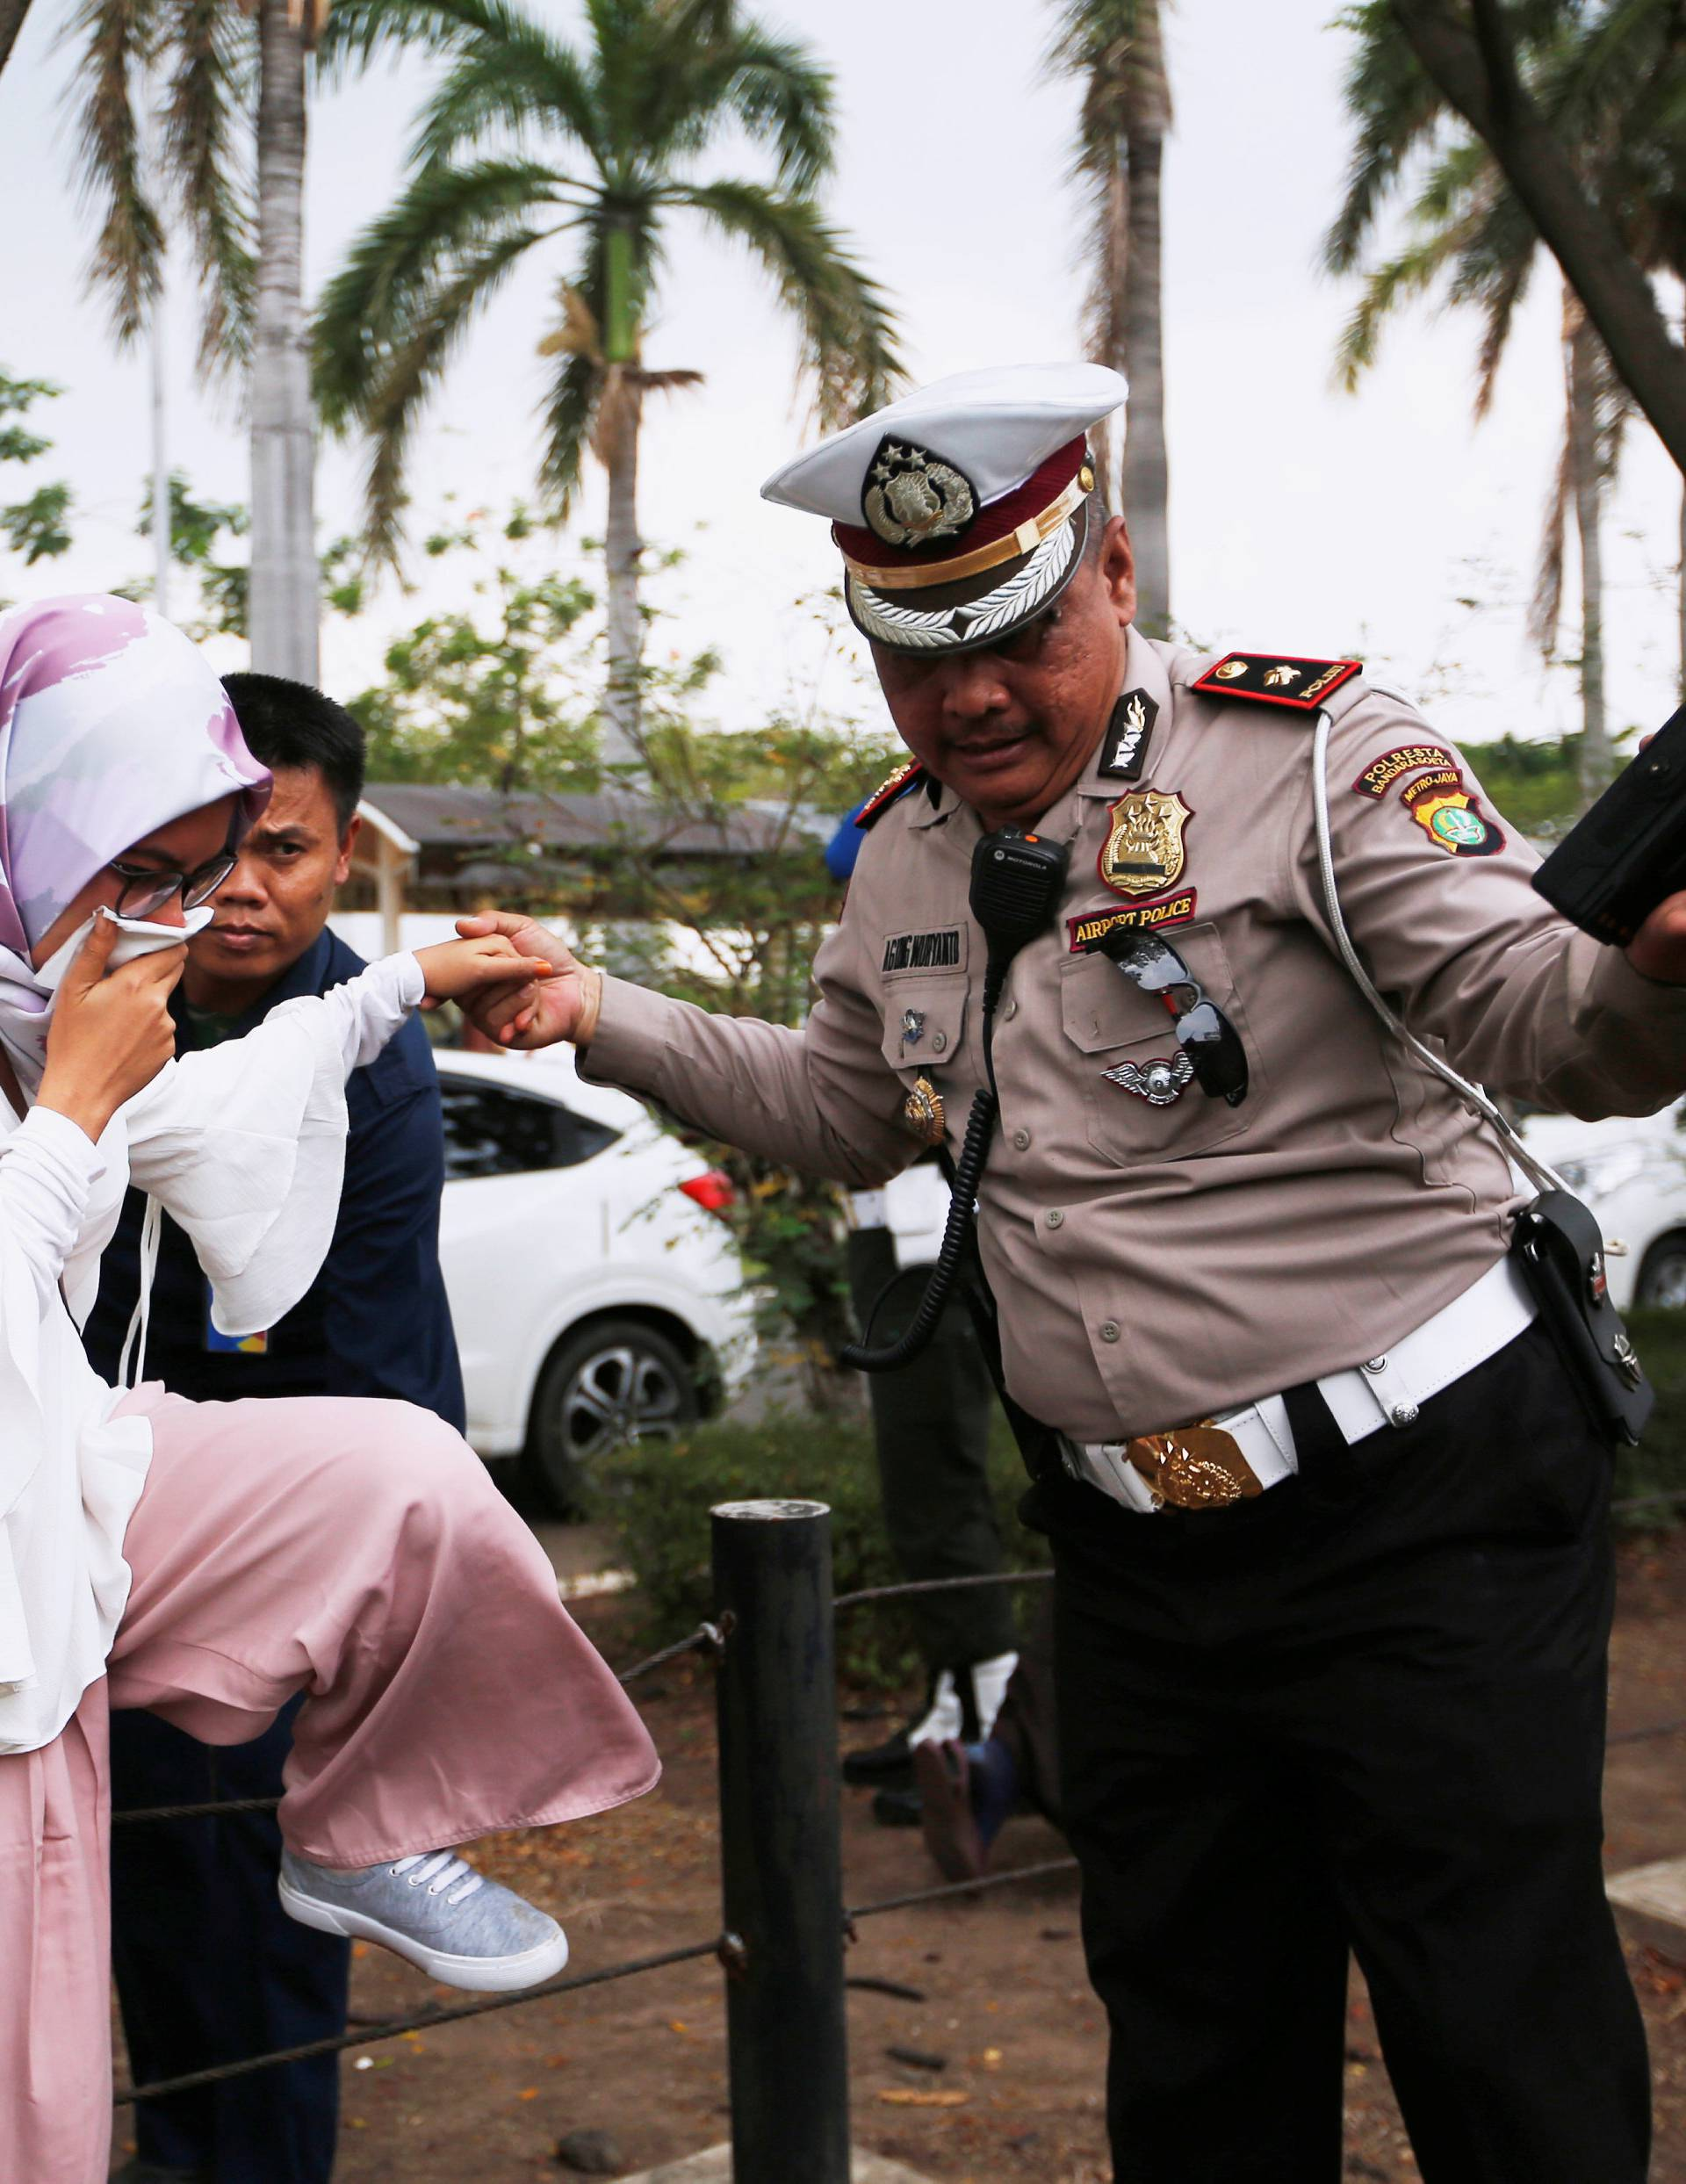 A policeman helps a woman who is a relative of a passenger of Lion Air flight JT610 that crashed into the sea, as she arrives at a crisis center at Soekarno Hatta International airport near Jakarta